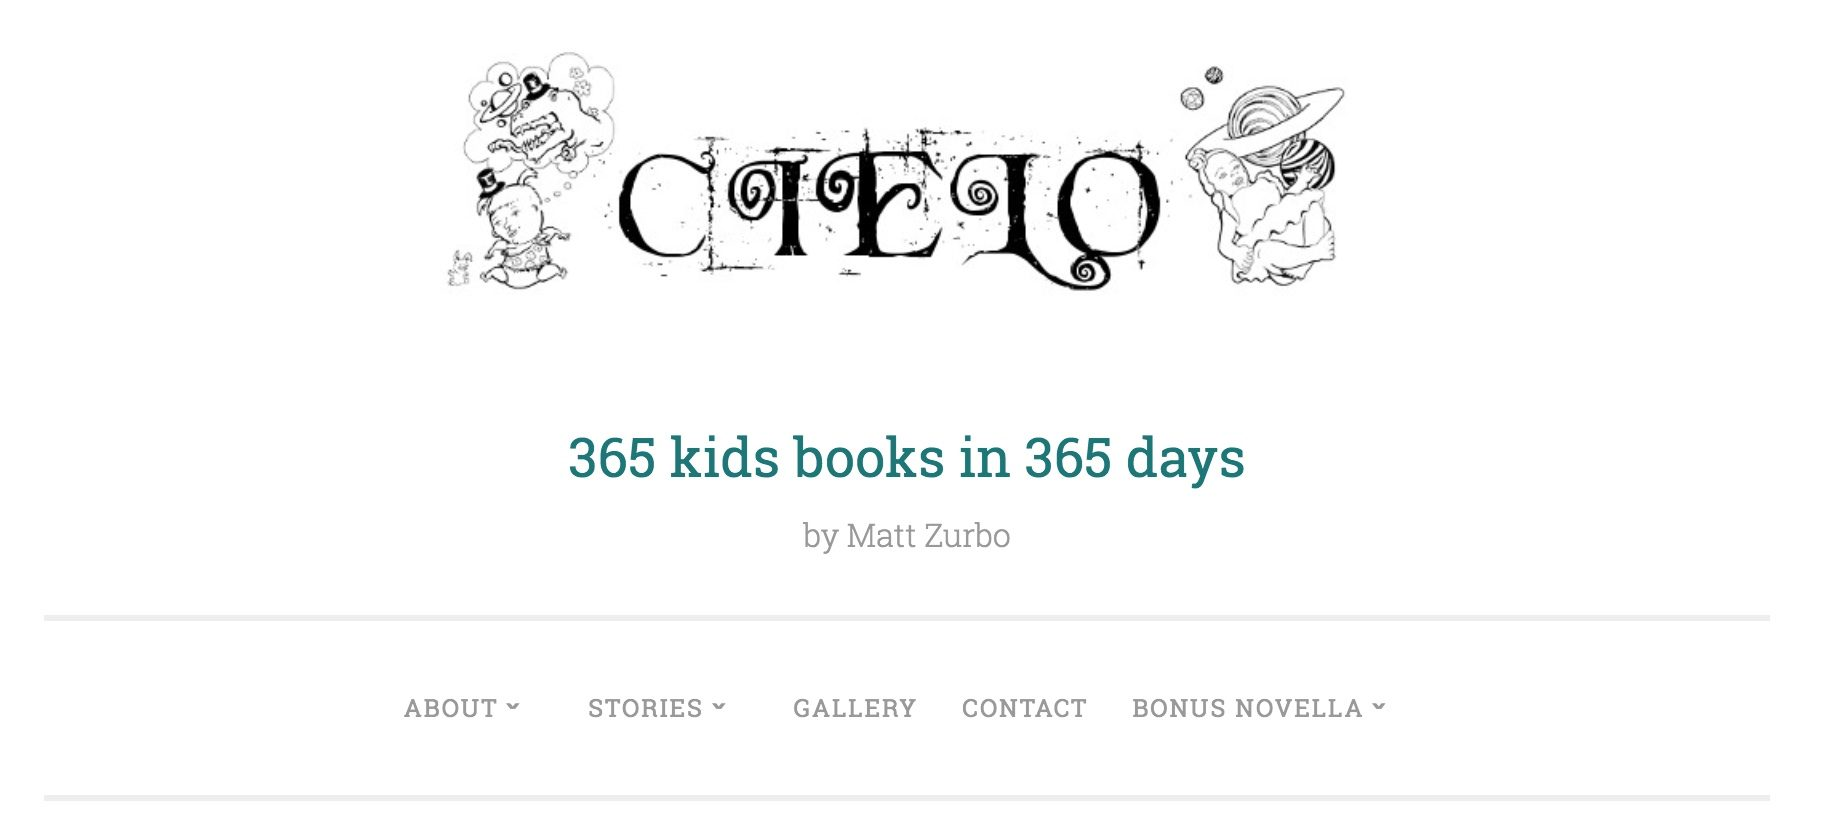 Cielo is Matt Zurbo's project to write a new children's book every day